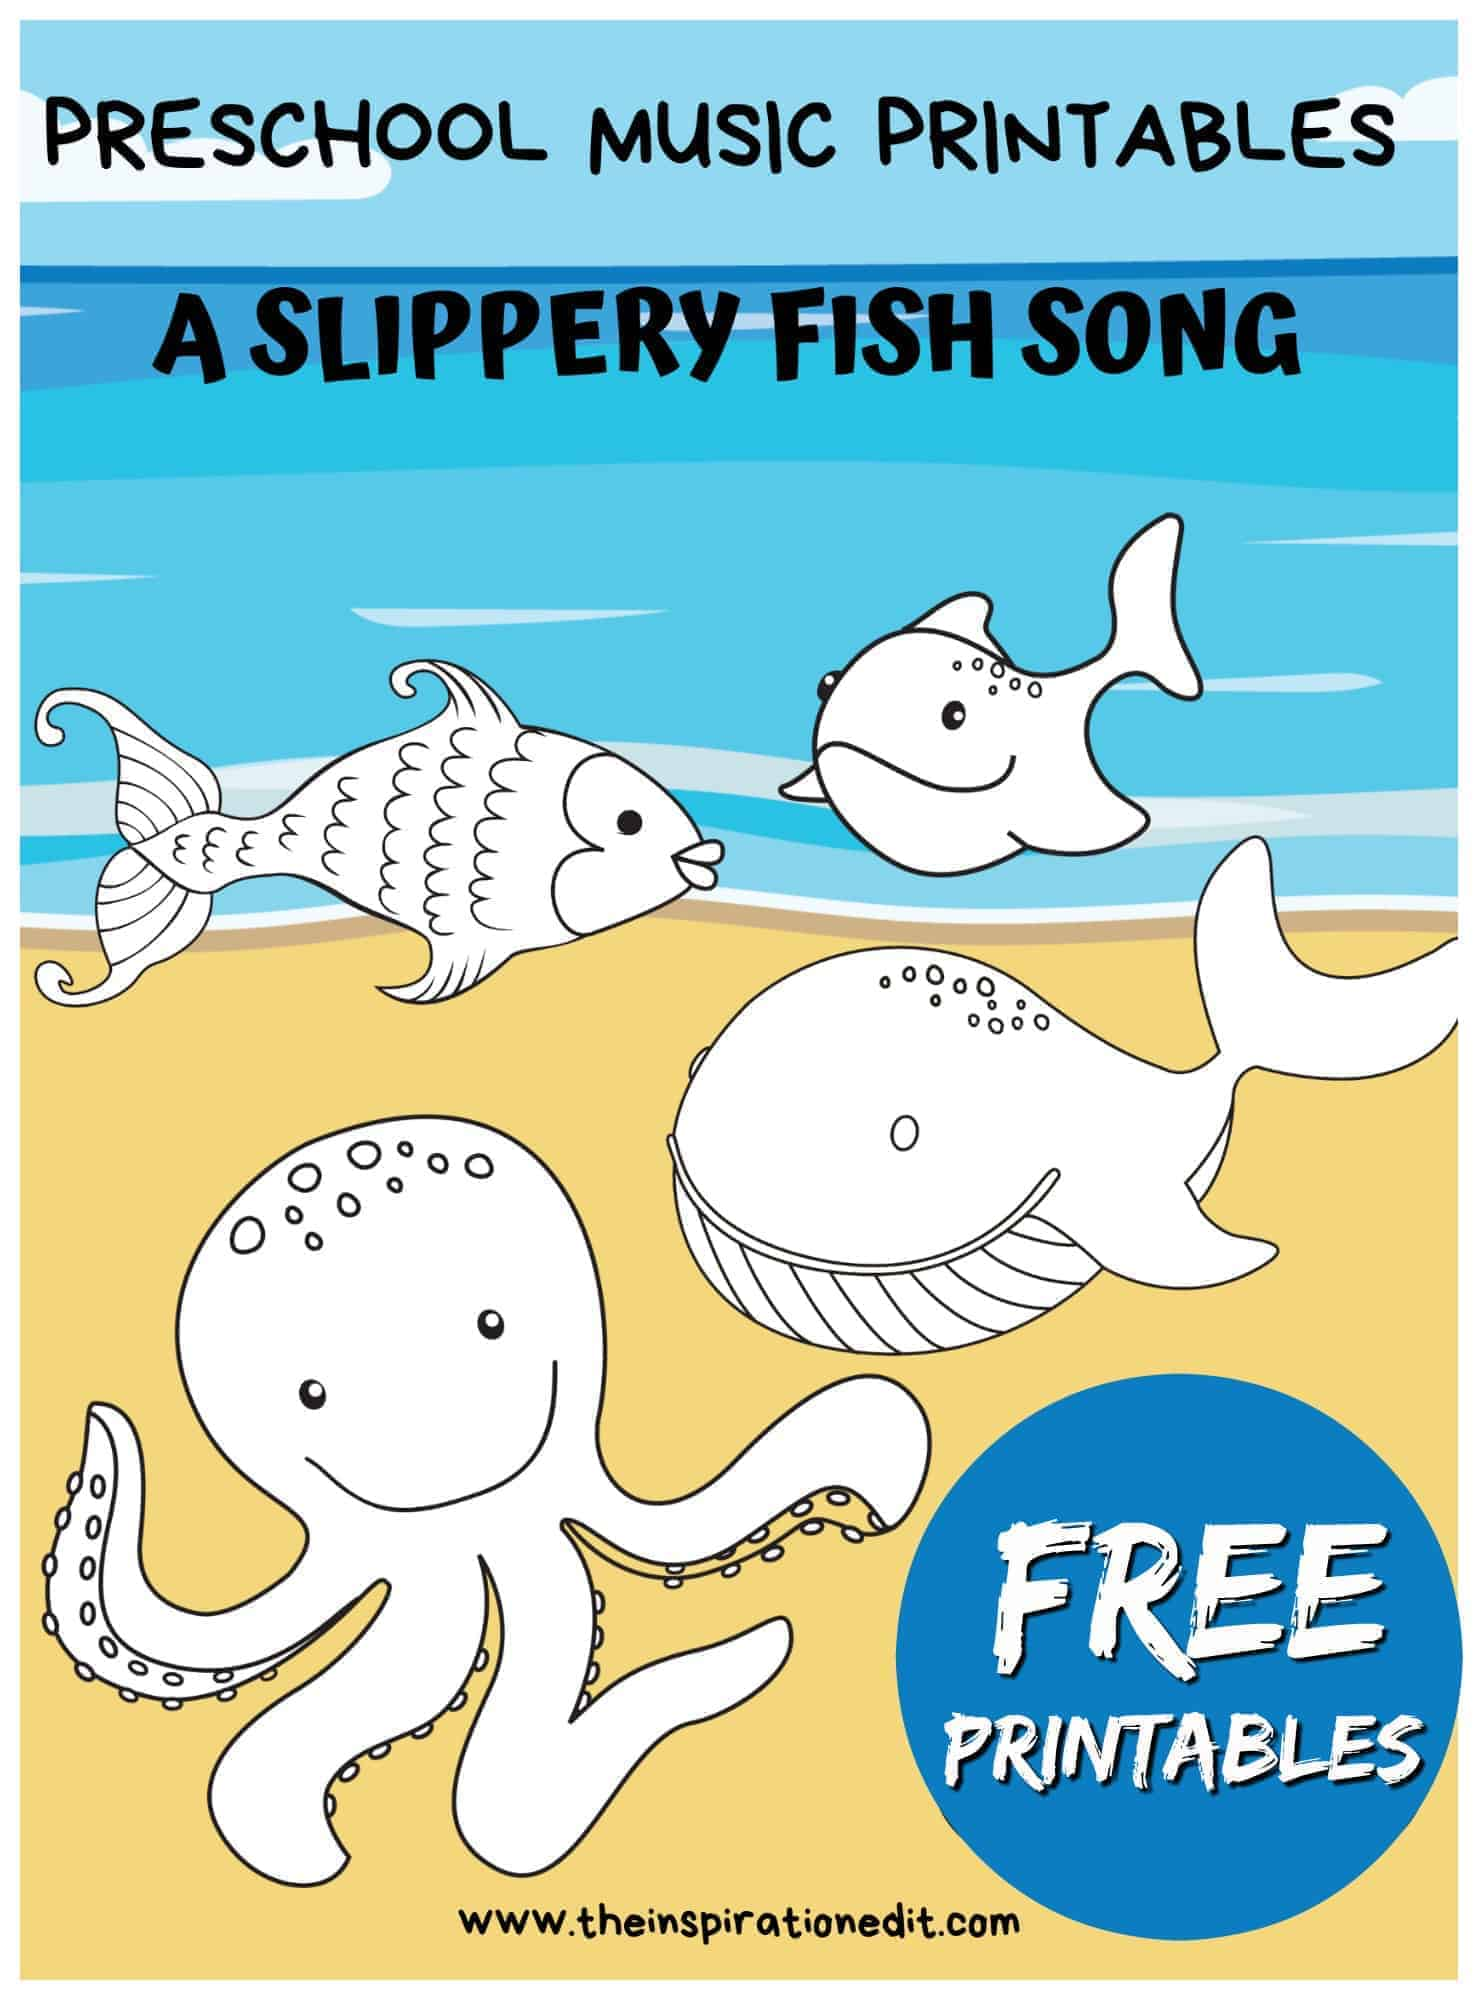 a SLIPPERY FISH SONG